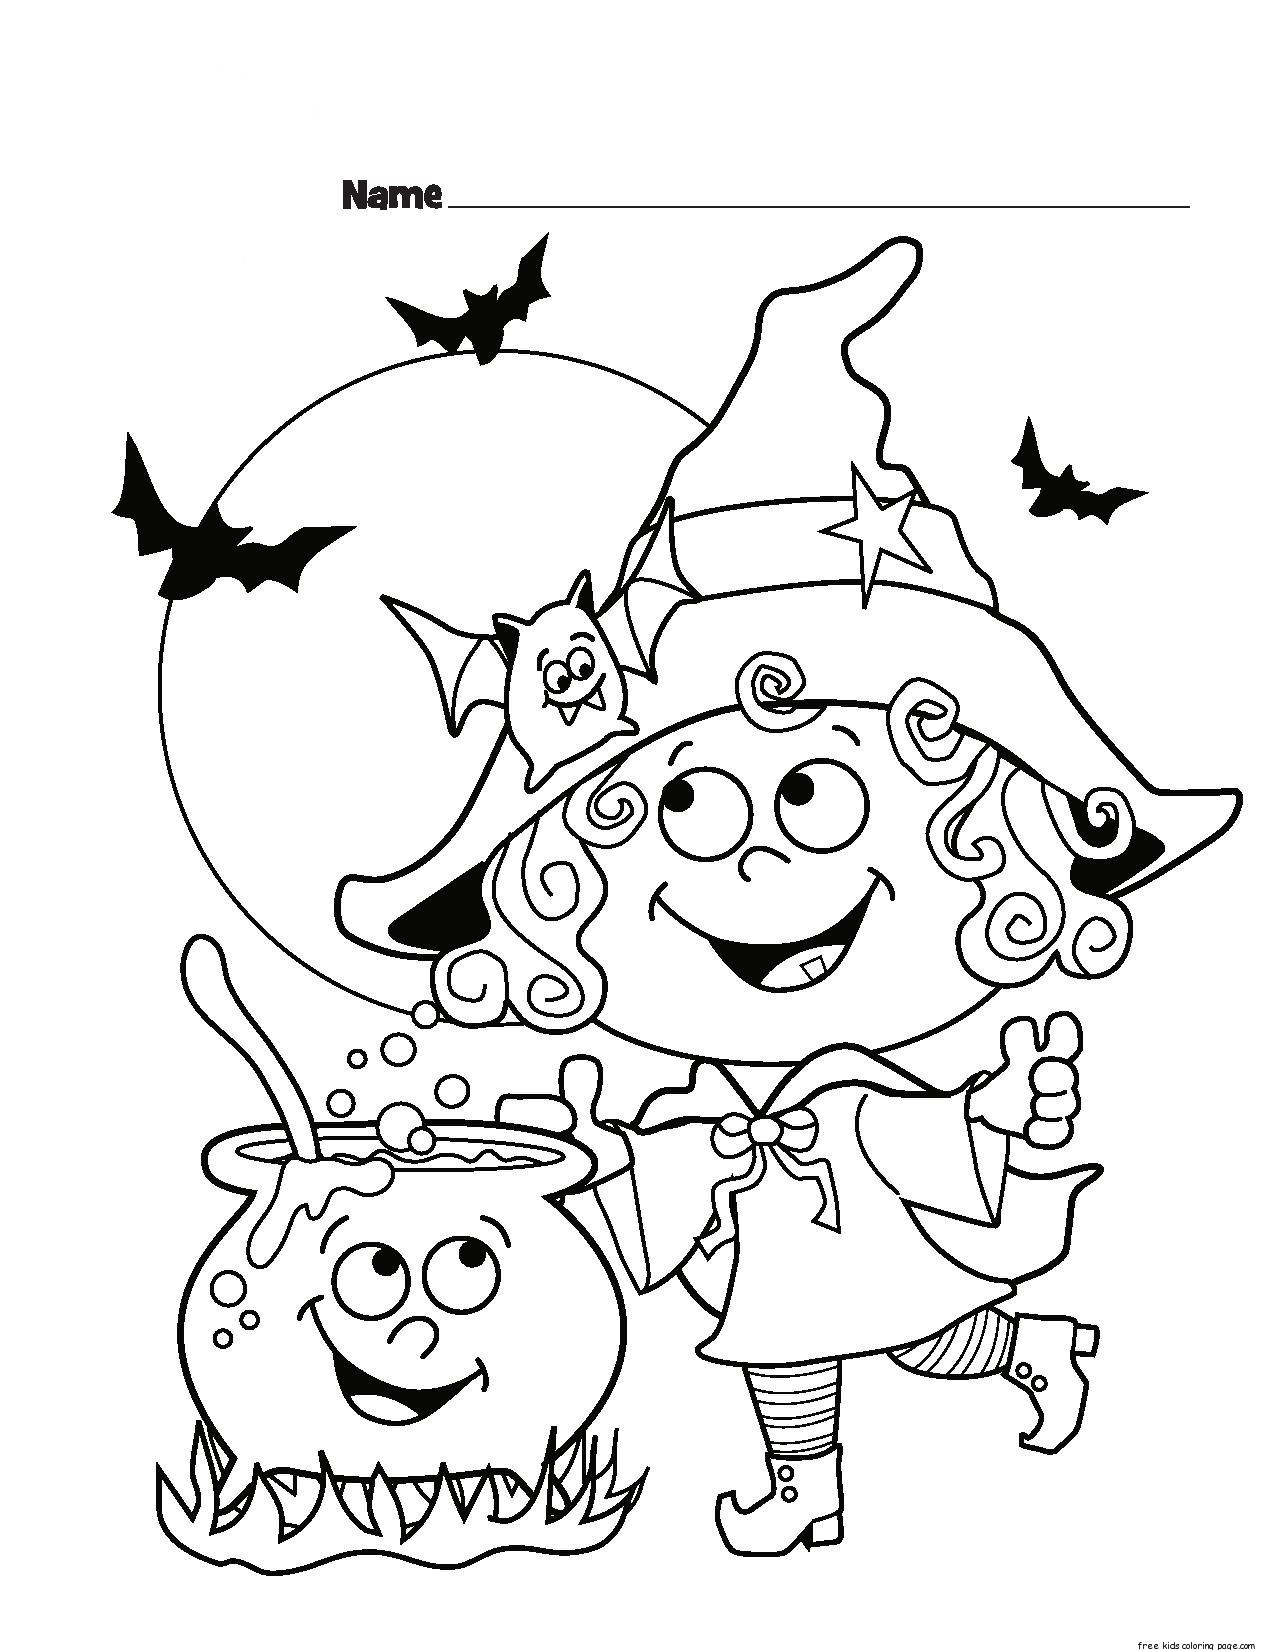 Best ideas about Free Coloring Sheets For Kids Halloween Themed . Save or Pin childrens halloween witch costumes coloring page for Now.